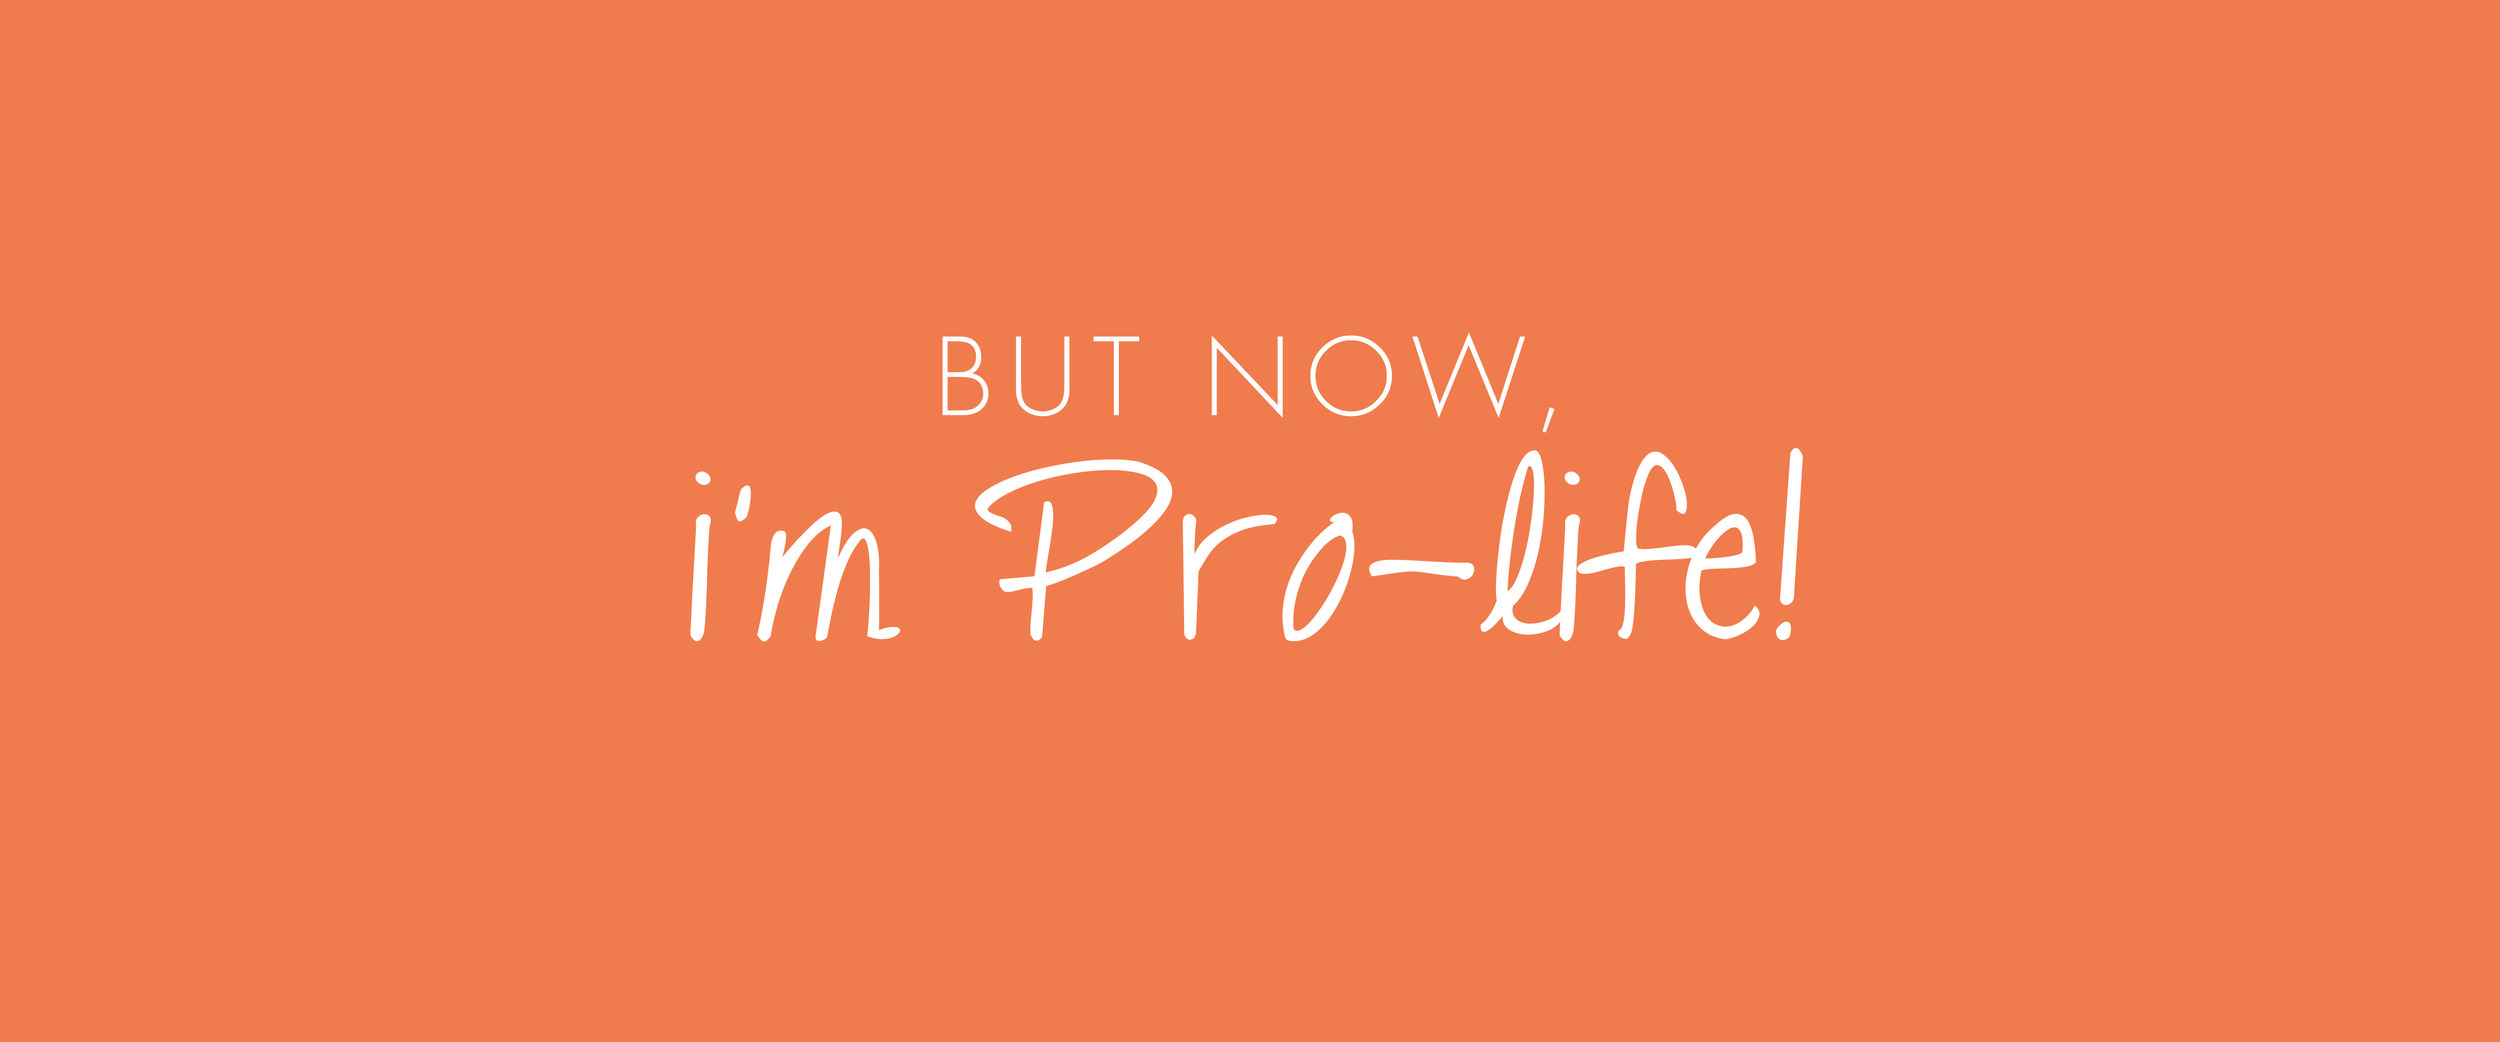 AbbyJohnson_Website_HeaderImages2.jpg